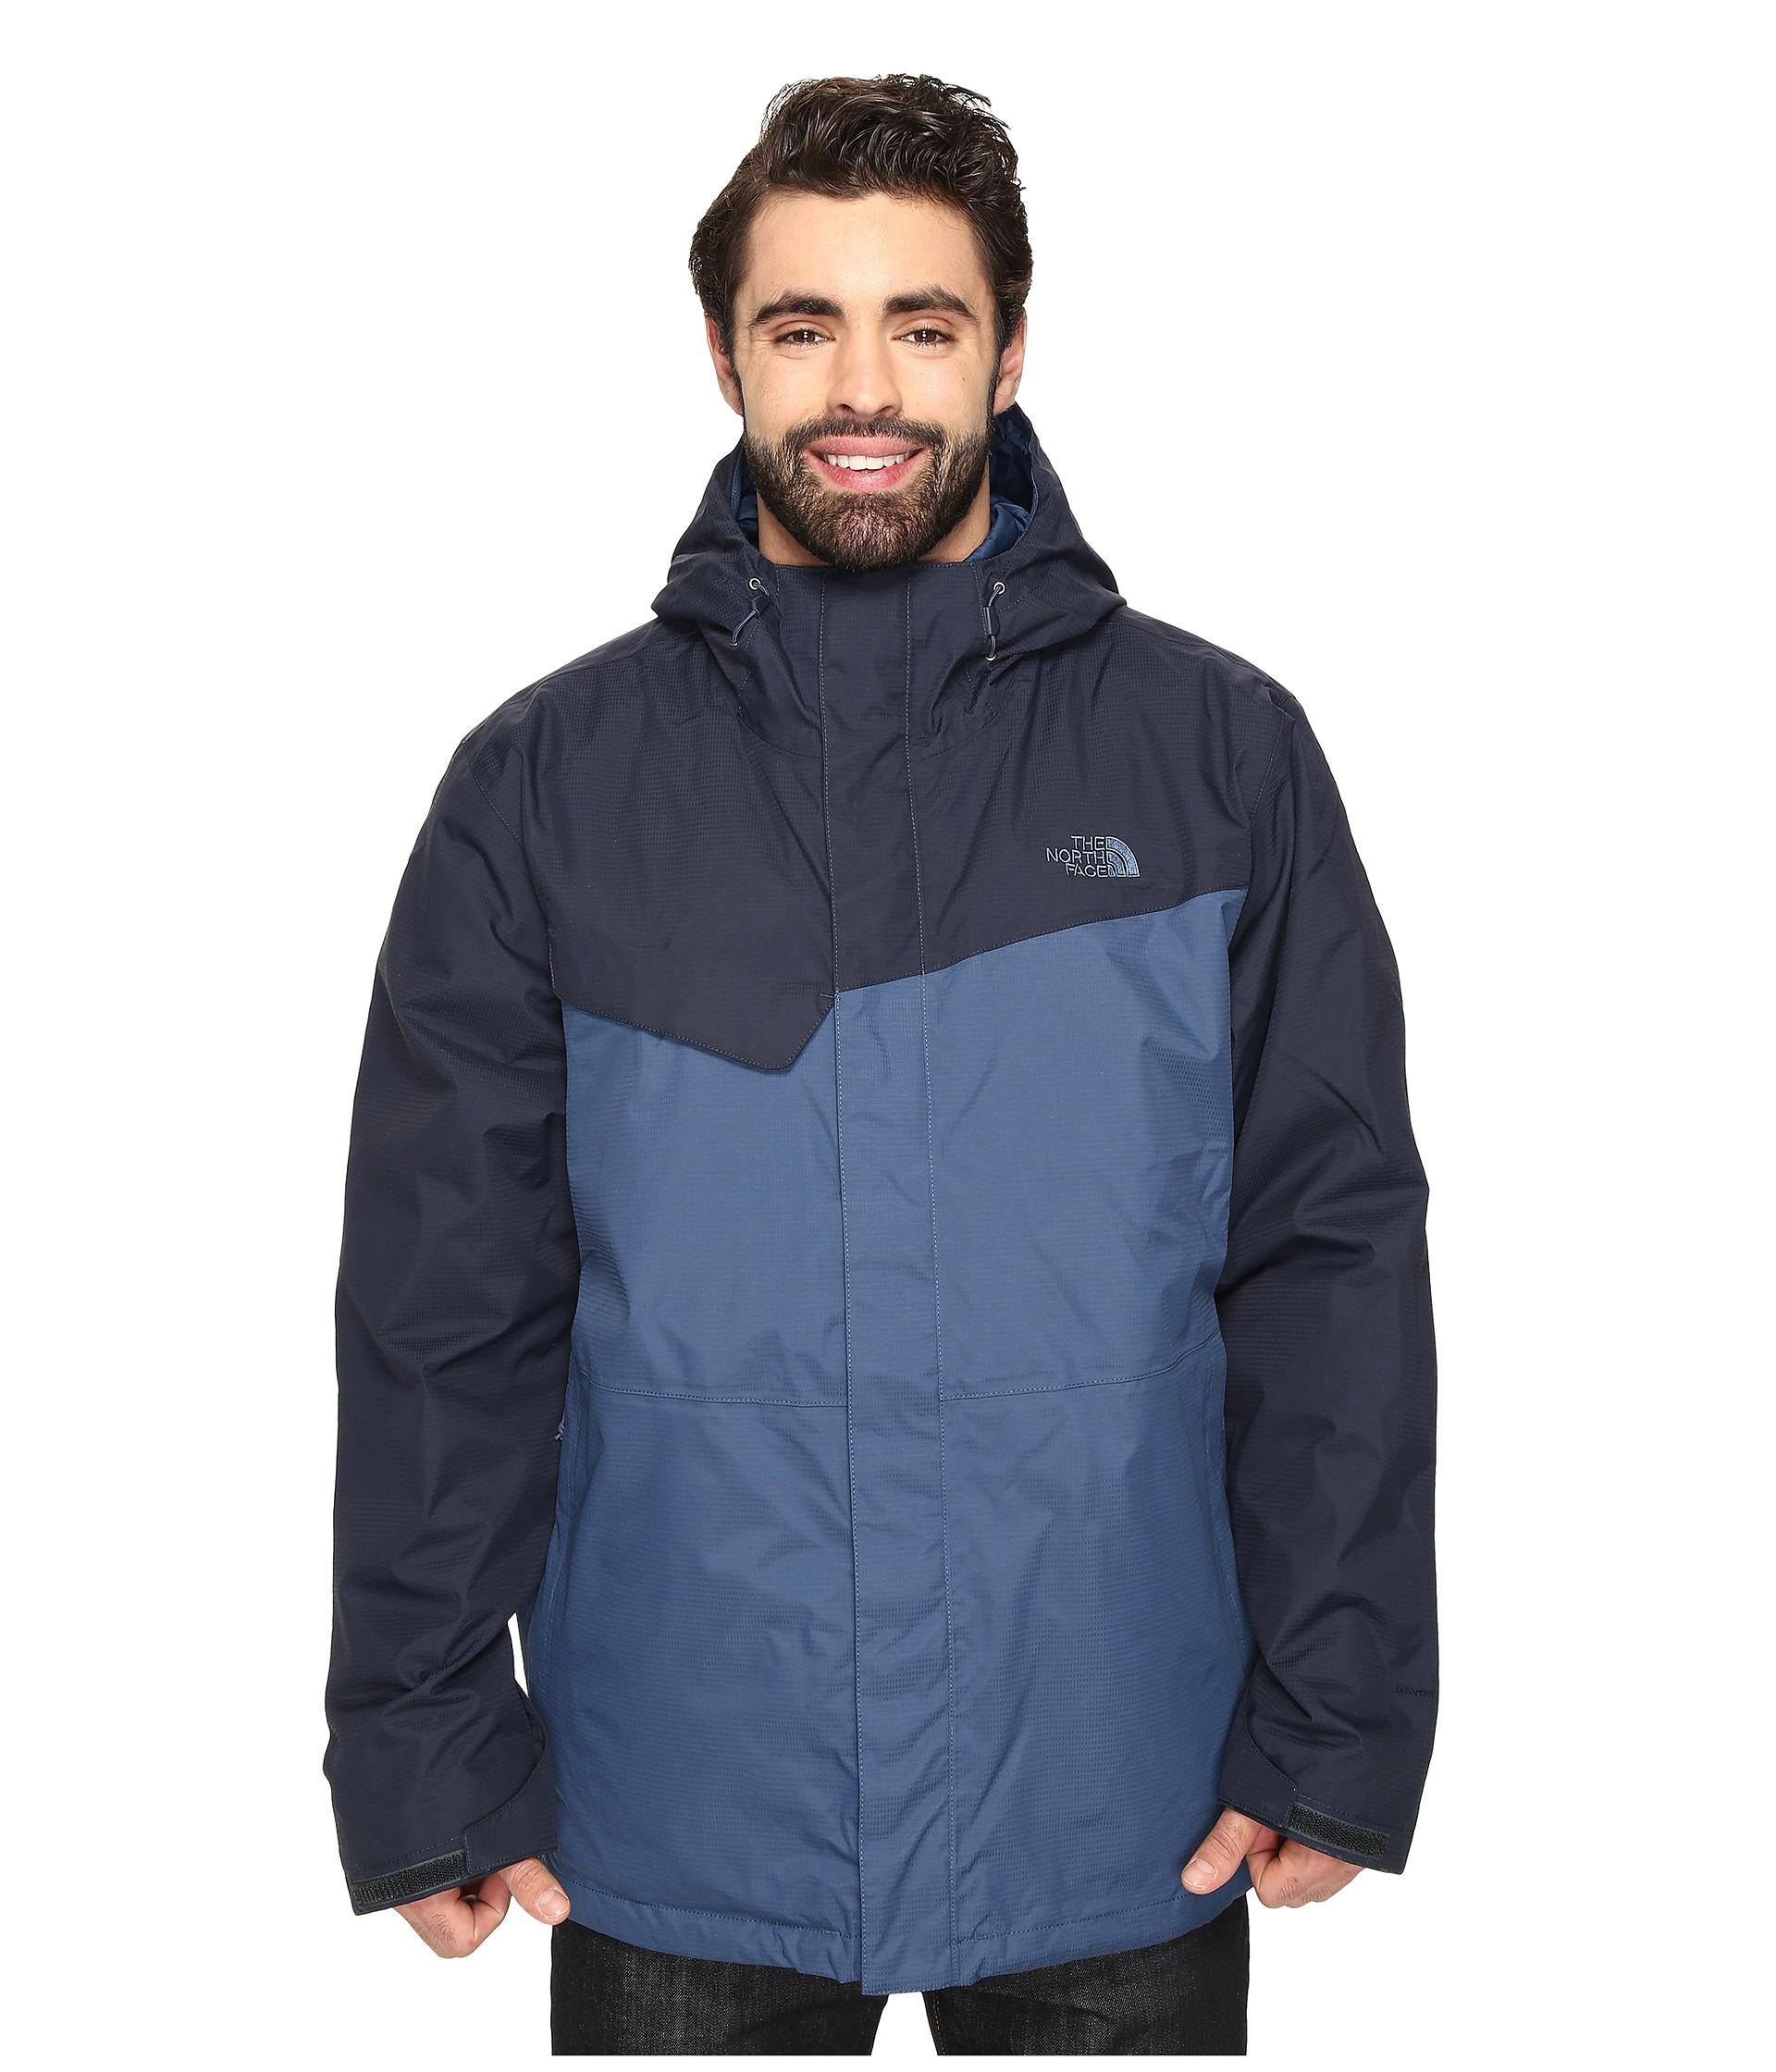 1aaf0db84 The North Face Blue Beswick Triclimate Jacket 3xl for men